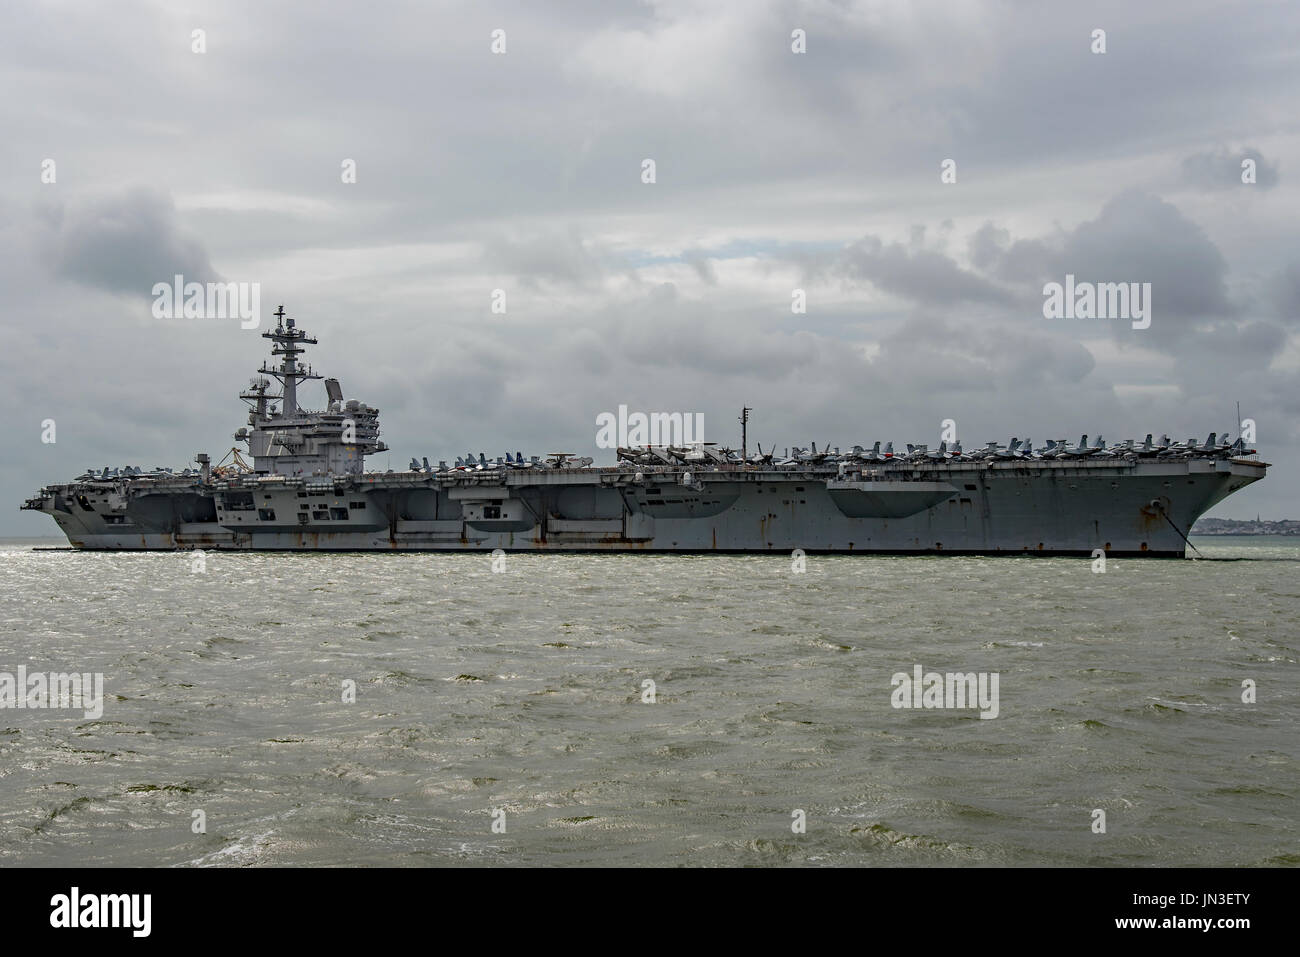 US Navy nuclear powered warship, the aircraft carrier USS George H W Bush on a visit to Portsmouth, UK by the United States Navy on 28/7/17. - Stock Image